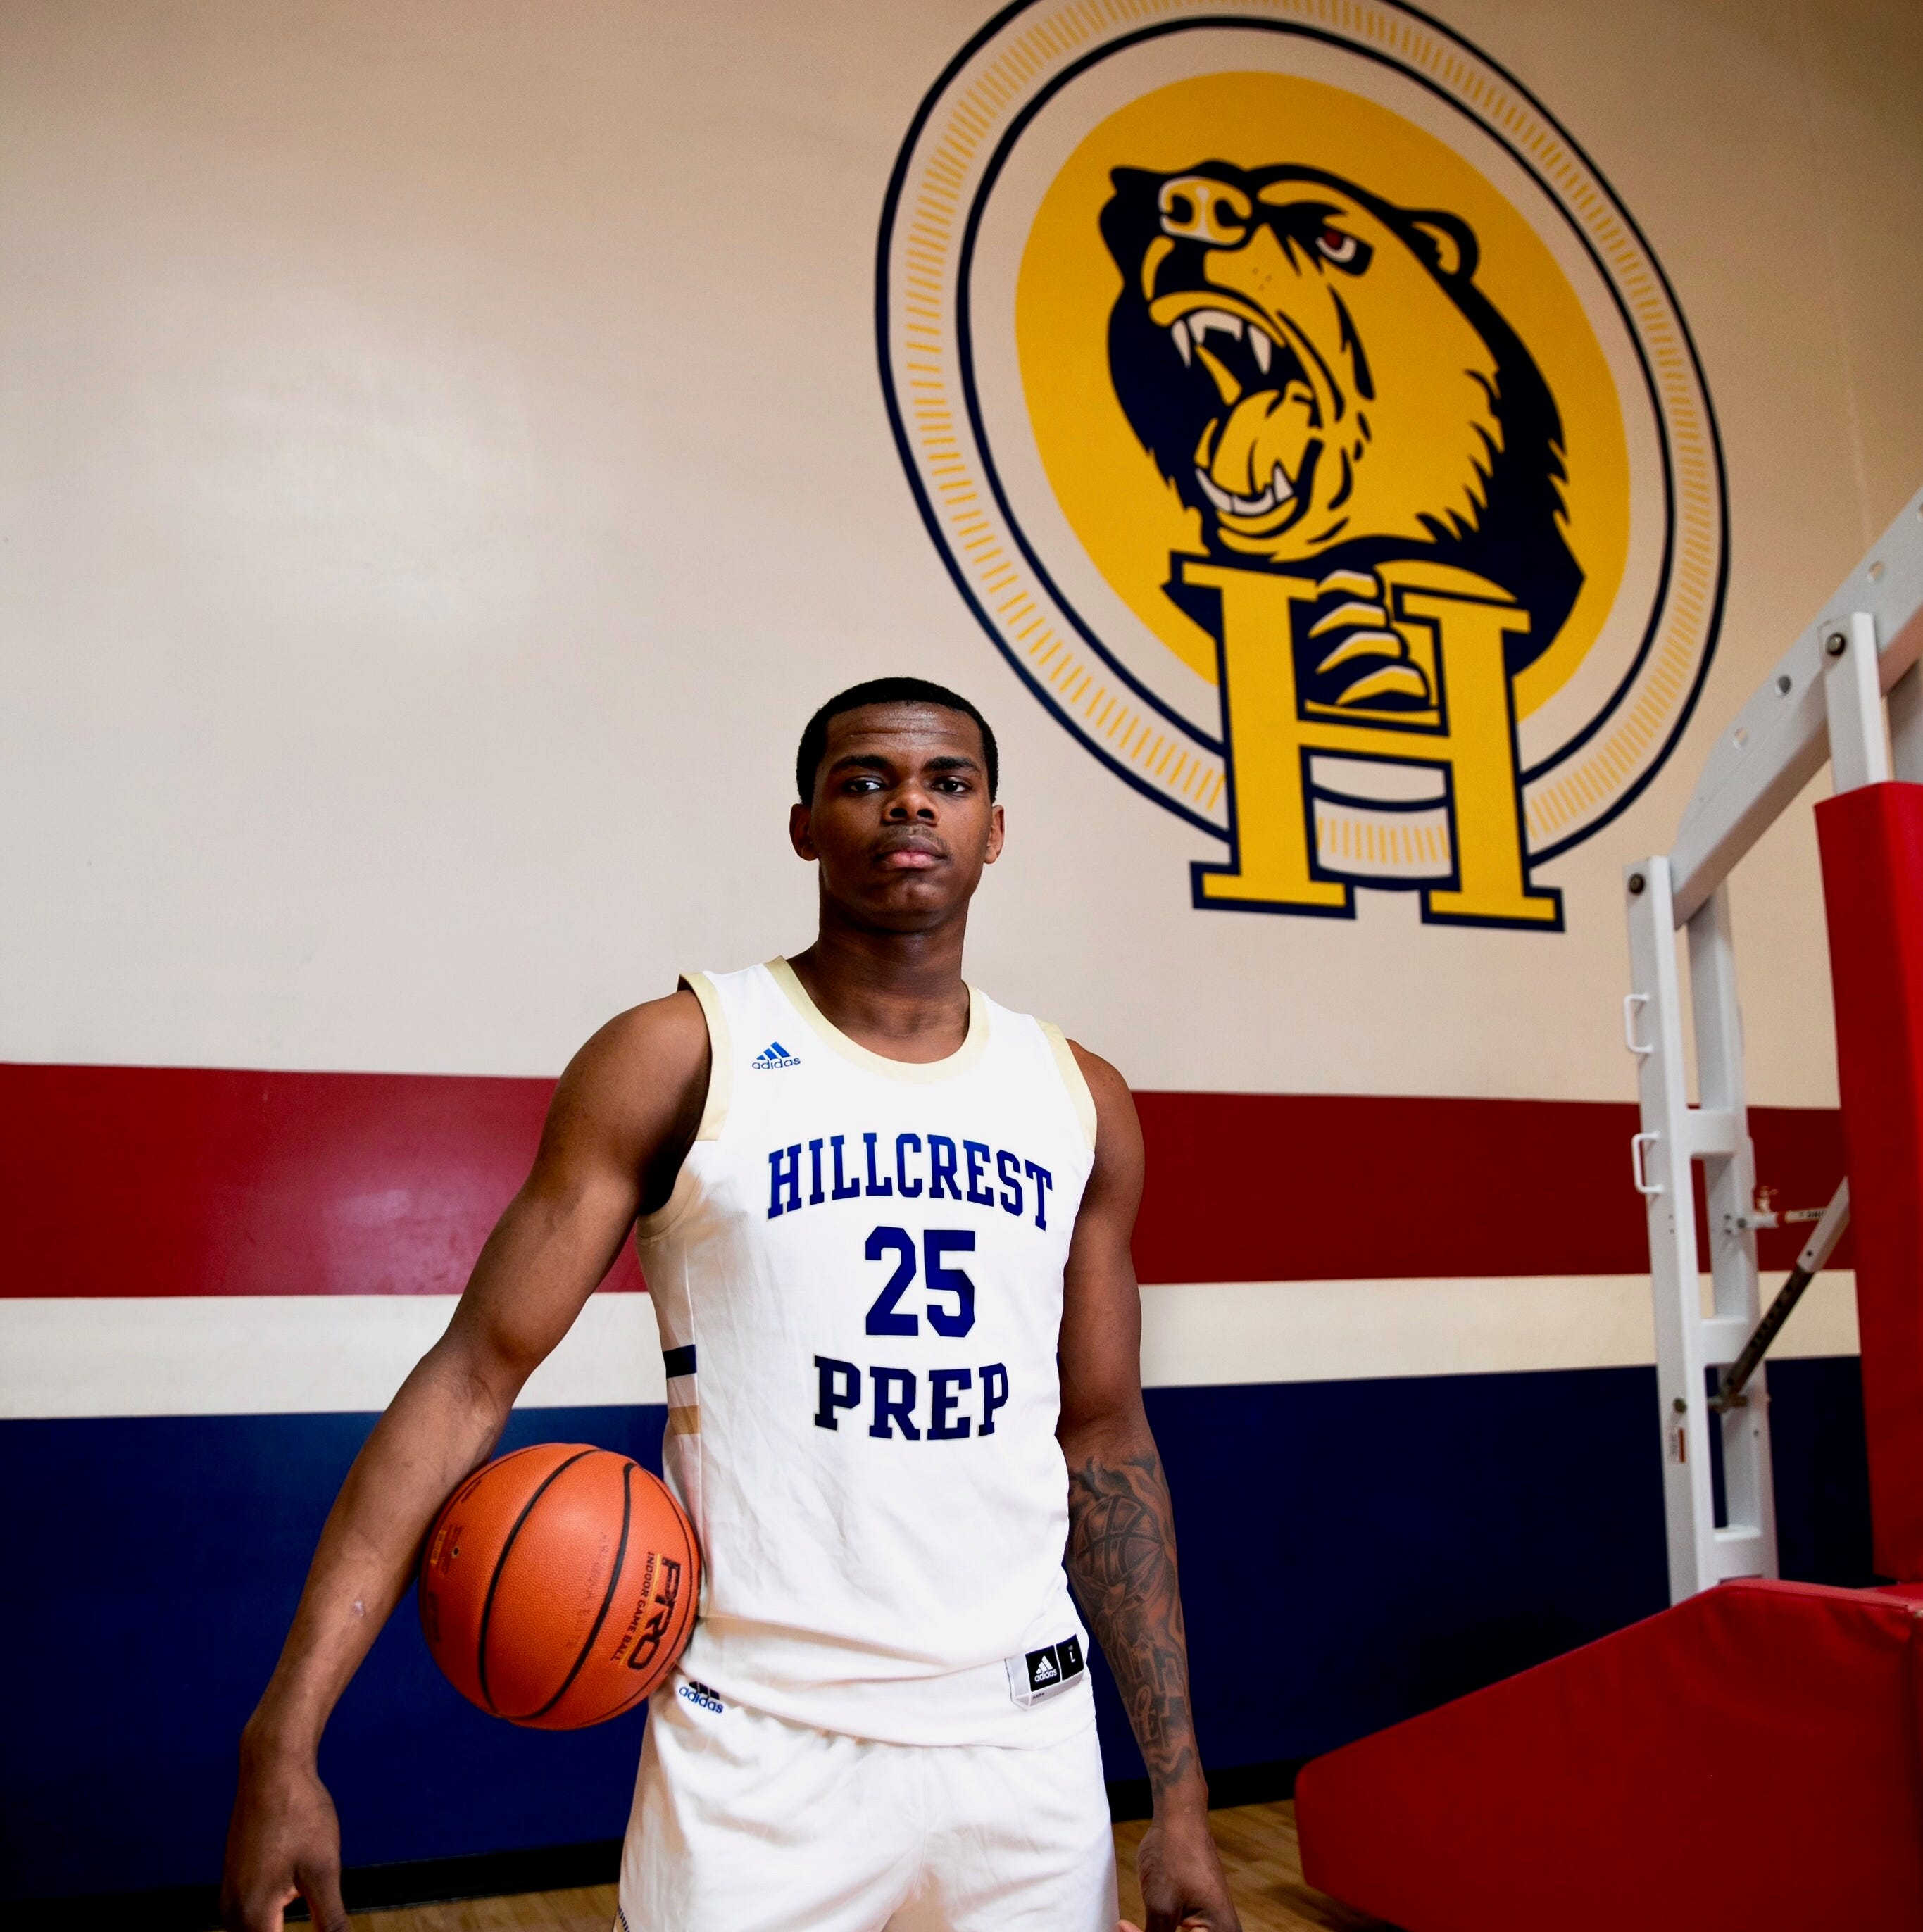 Hillcrest Prep could be grooming another No.1 NBA draft pick in Michael Foster